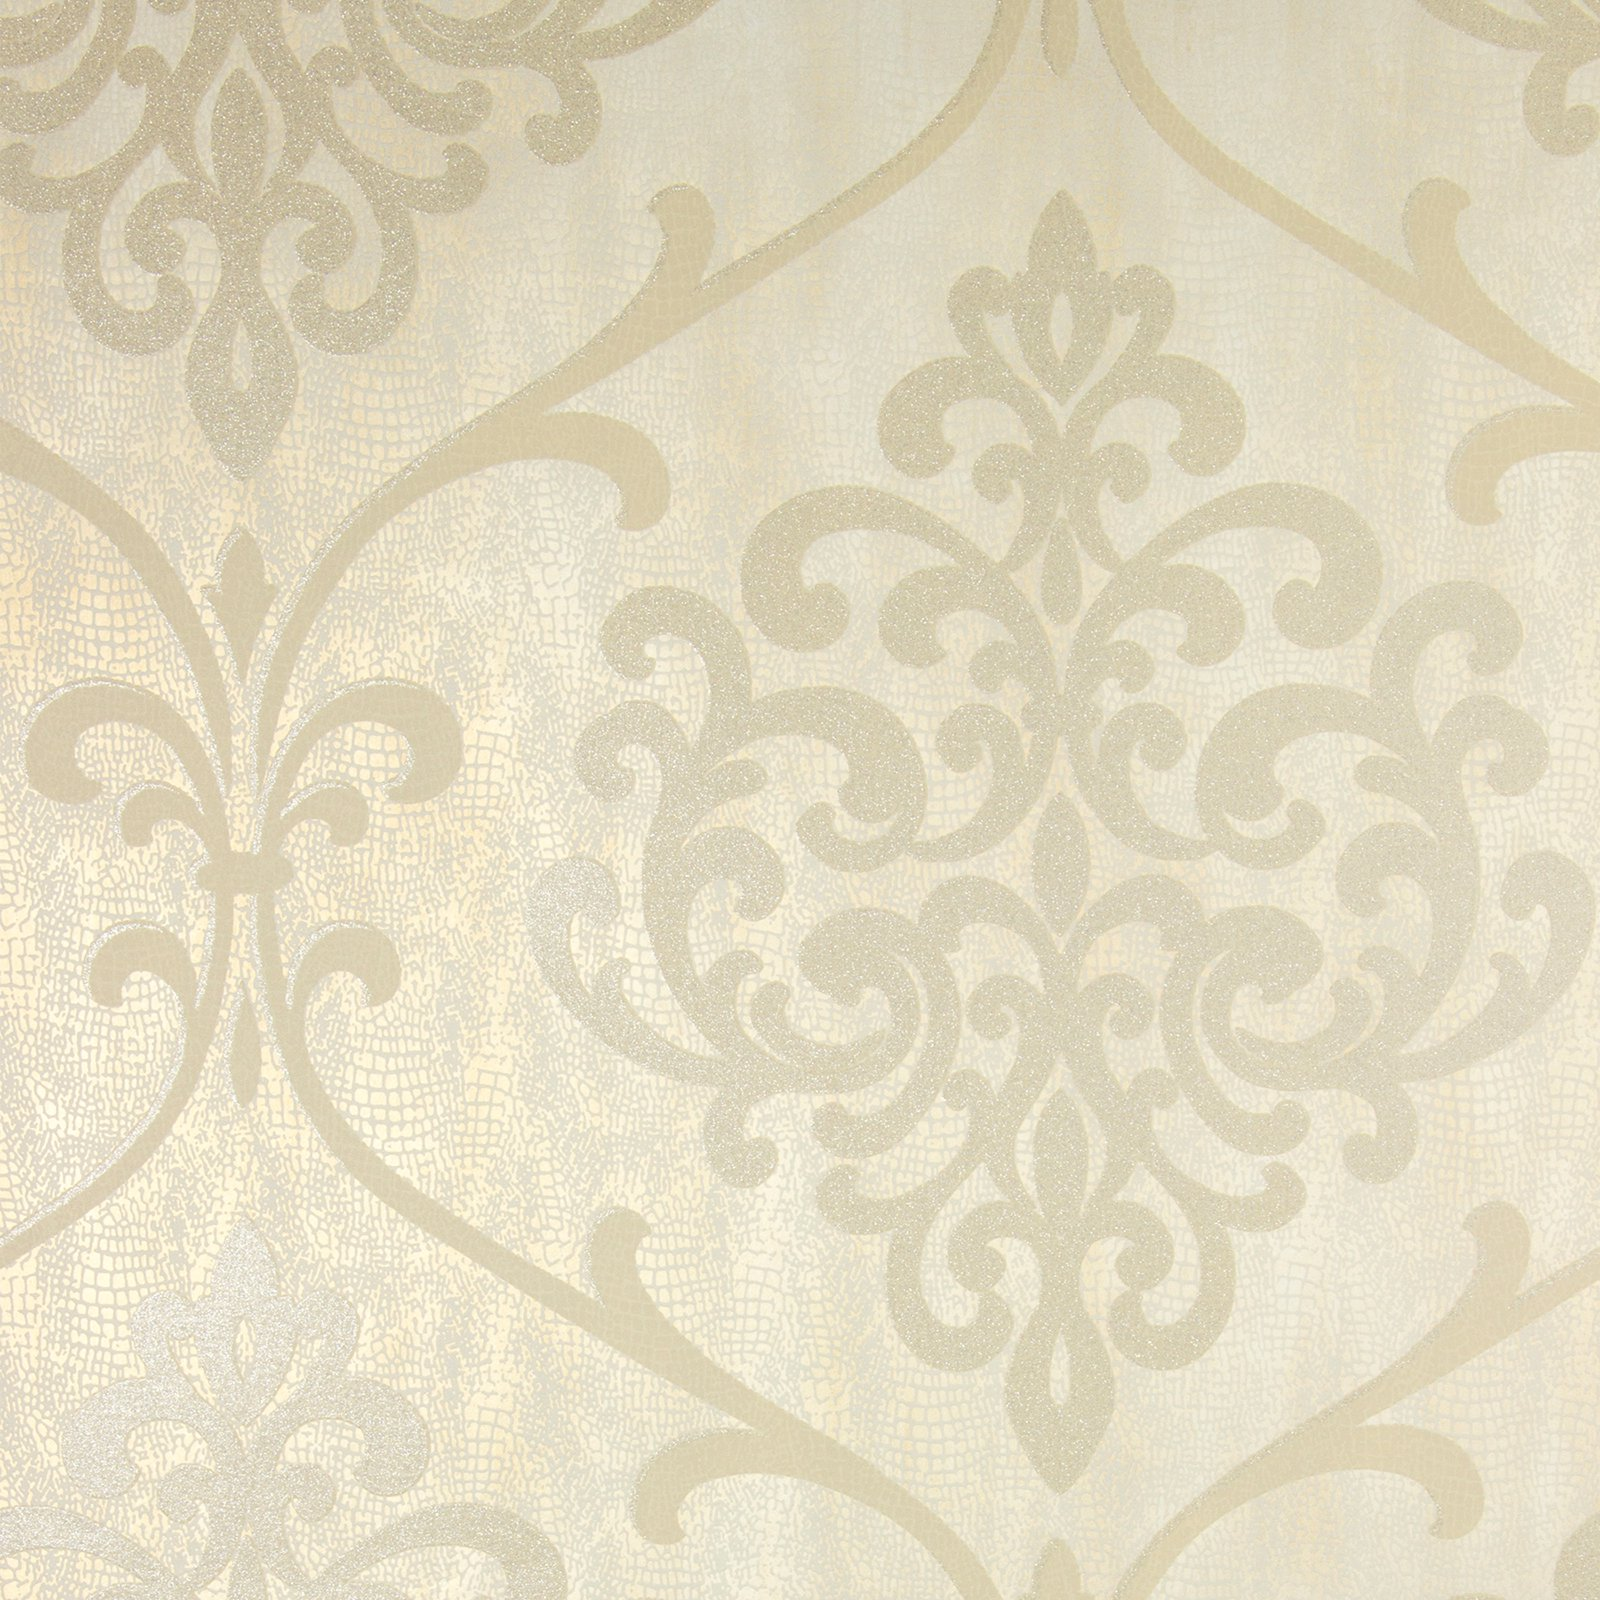 Kenneth James Ambrosia Glitter Damask Wallpaper